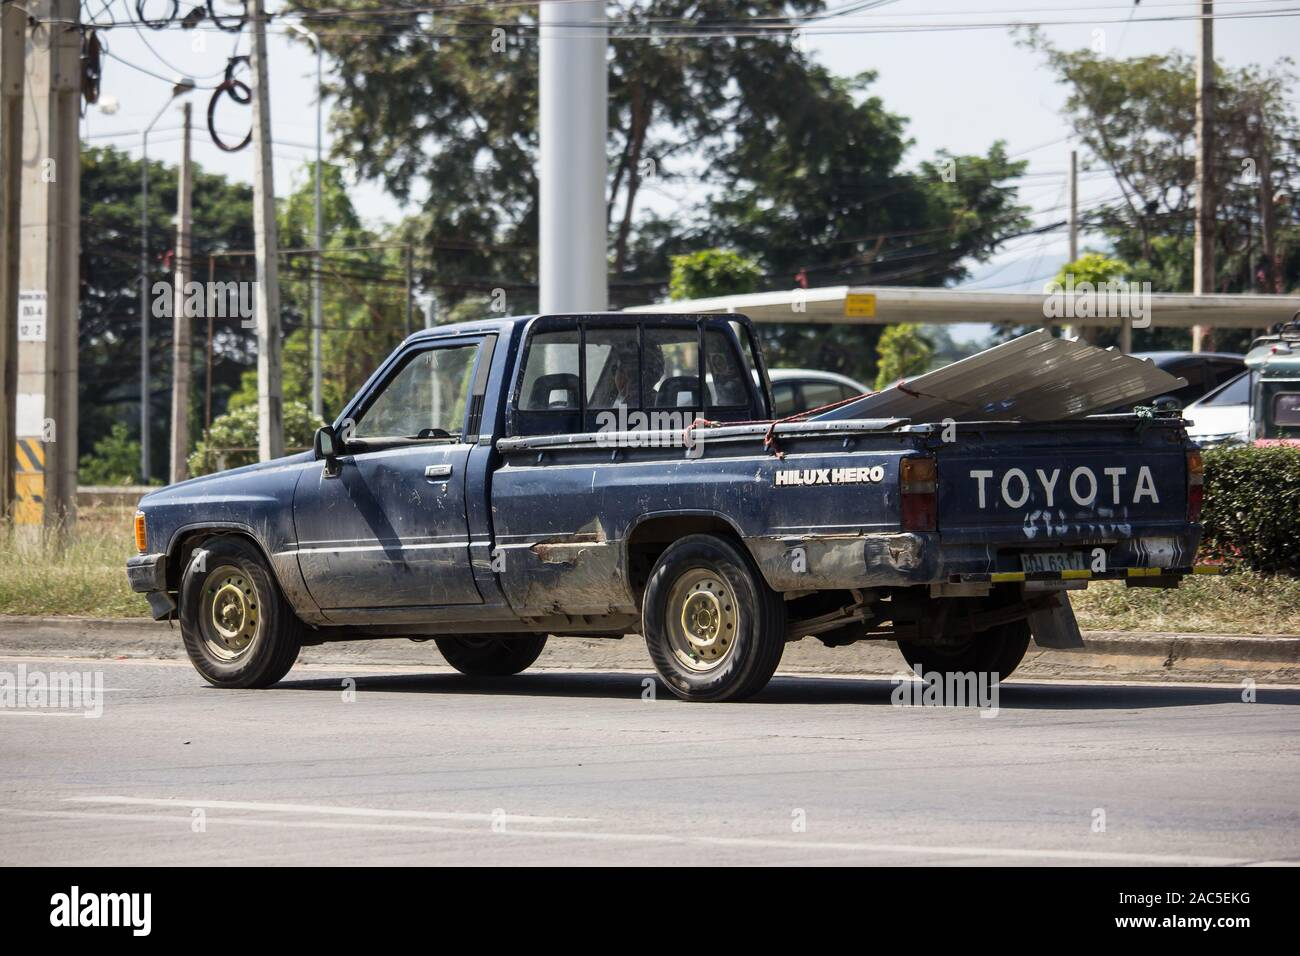 Chiangmai Thailand November 19 2019 Private Old Pickup Car Toyota Hilux Mighty X On Road No 1001 8 Km From Chiangmai City Stock Photo Alamy